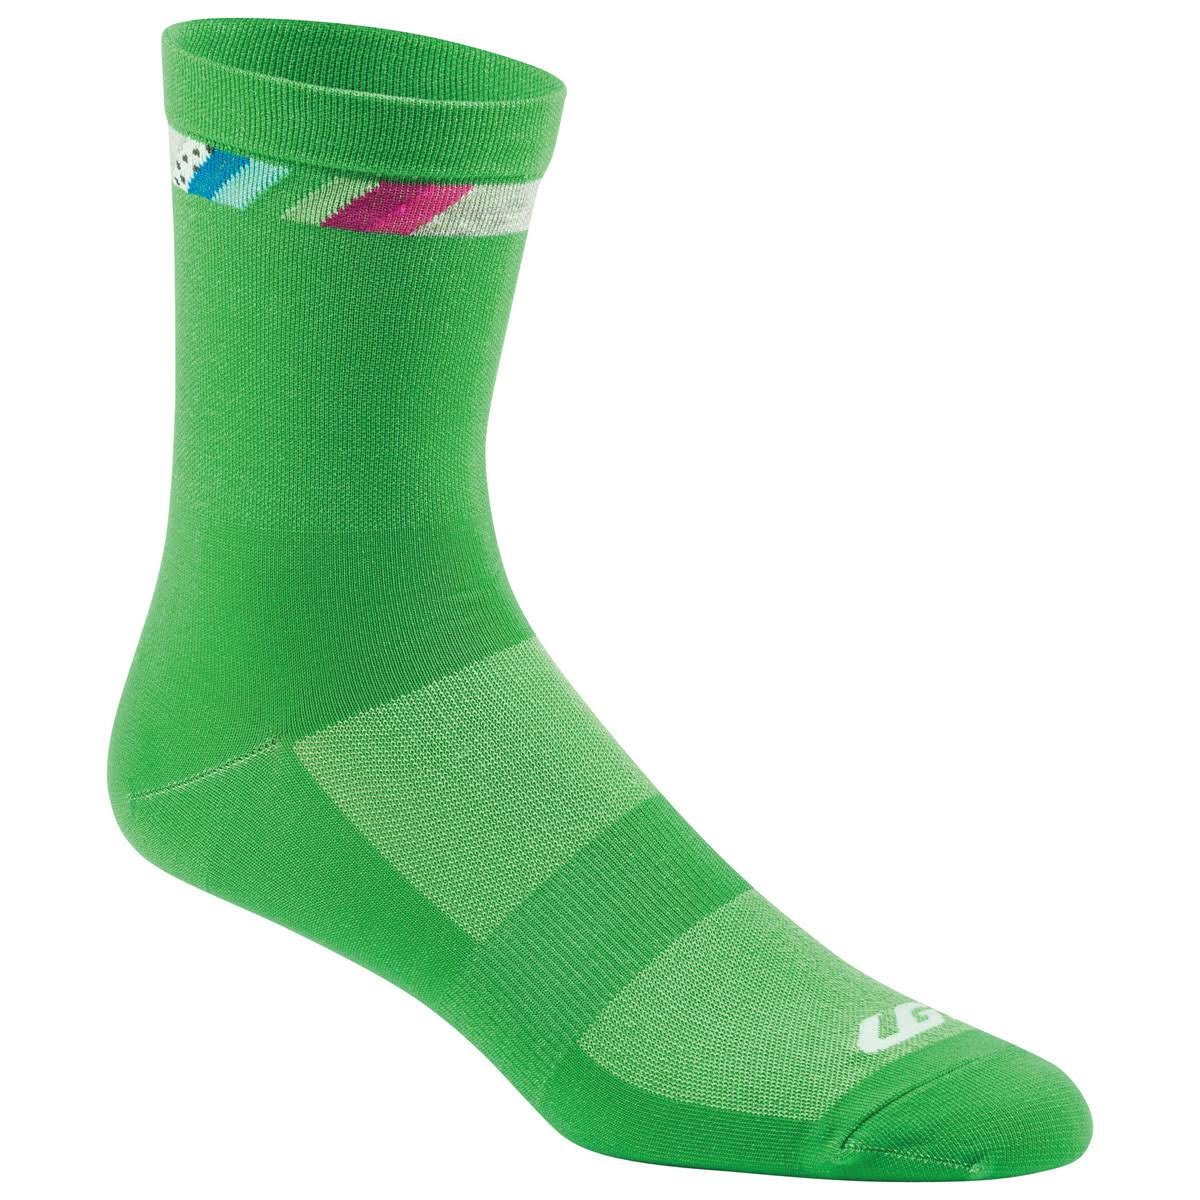 Louis Garneau Conti Long Cycling Socks